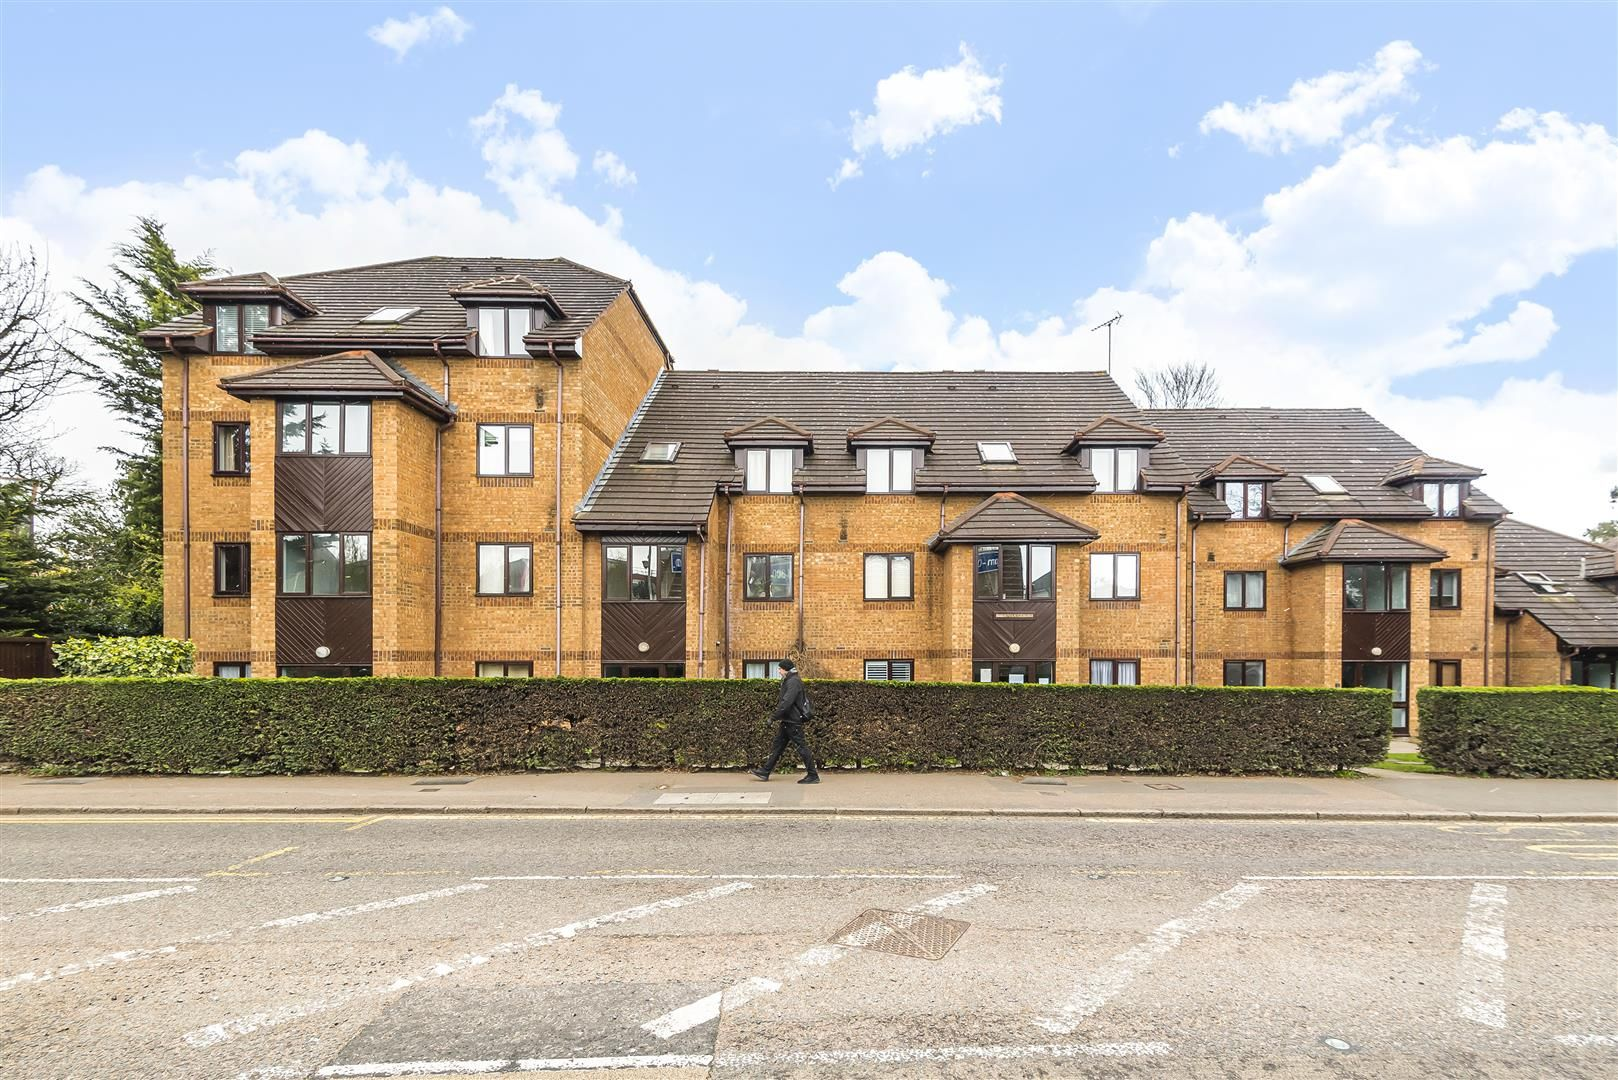 Property photo 1 of 10. Savanagh Court - Front.Jpg